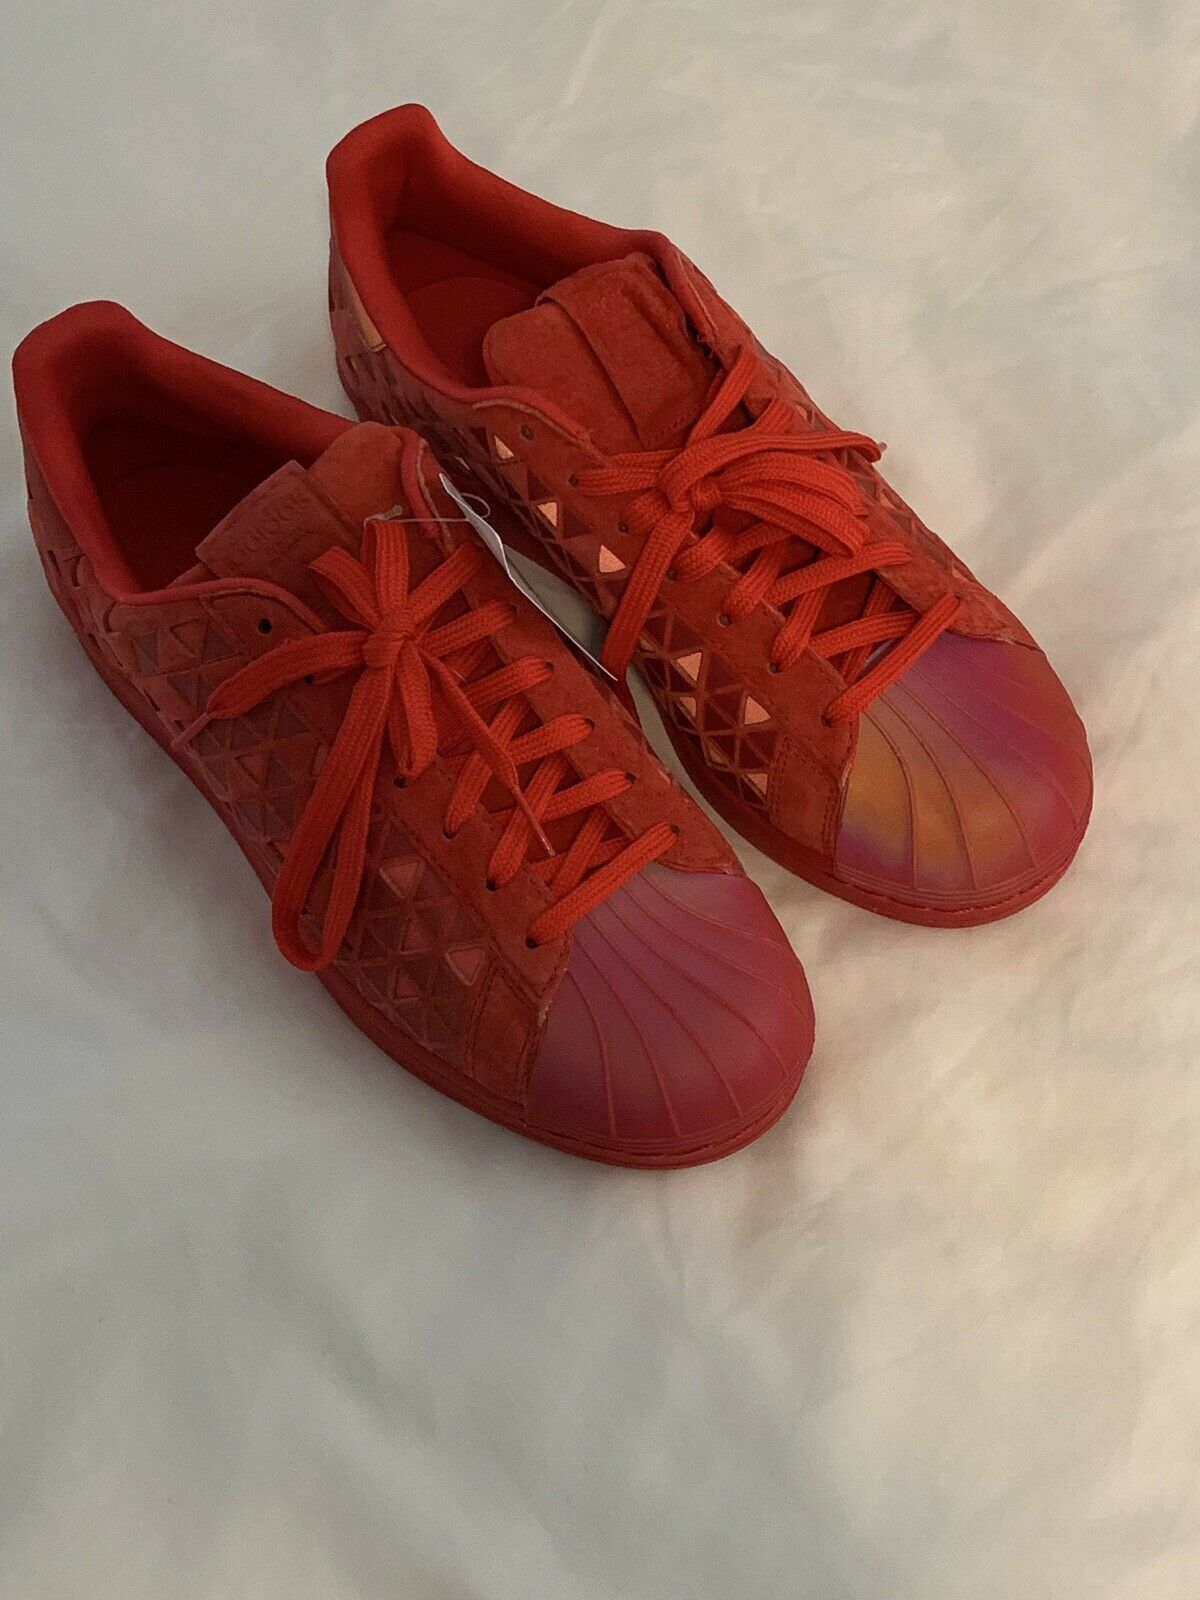 Adidas Men's Reflective Red Size 9.5 Superstar Xeno Casual shoes AQ8181